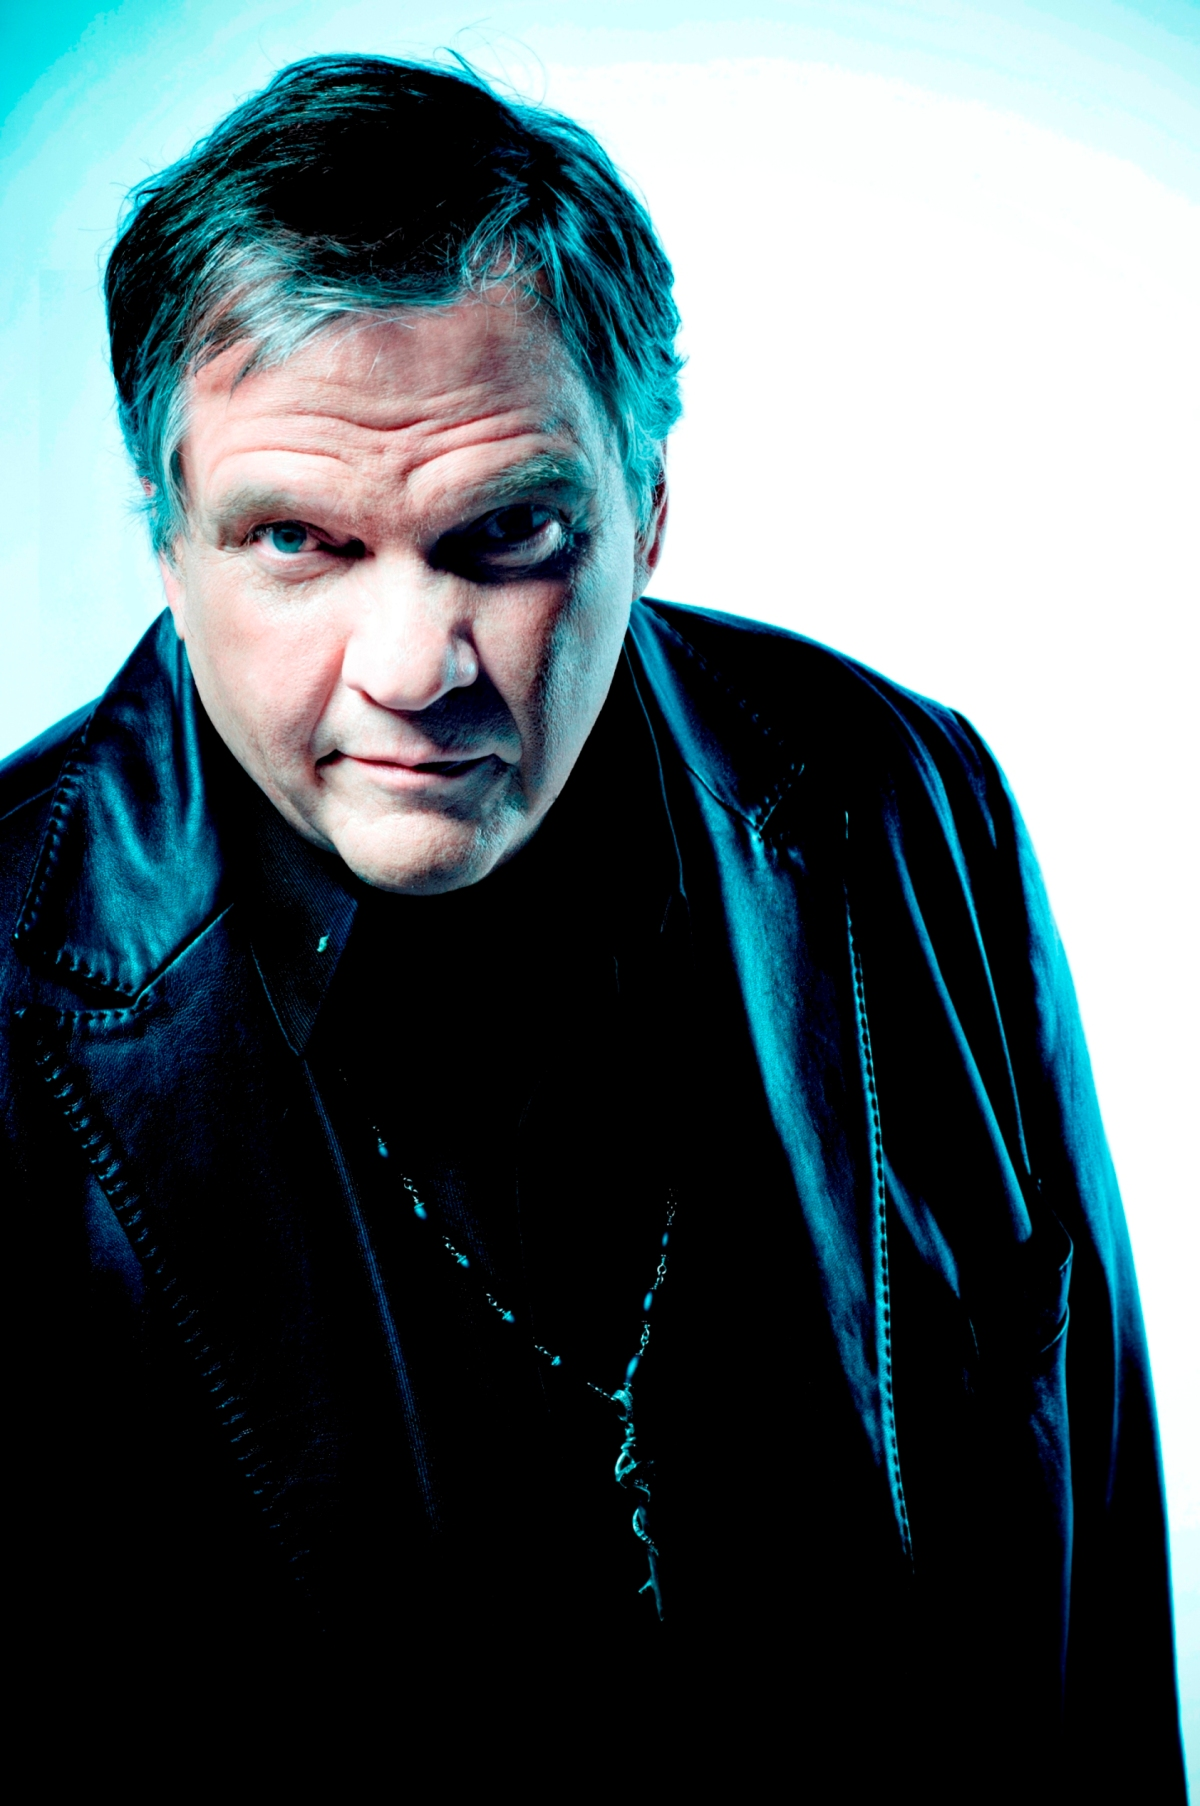 http://ticketsthere.files.wordpress.com/2013/02/meatloaf.jpg?w=1200